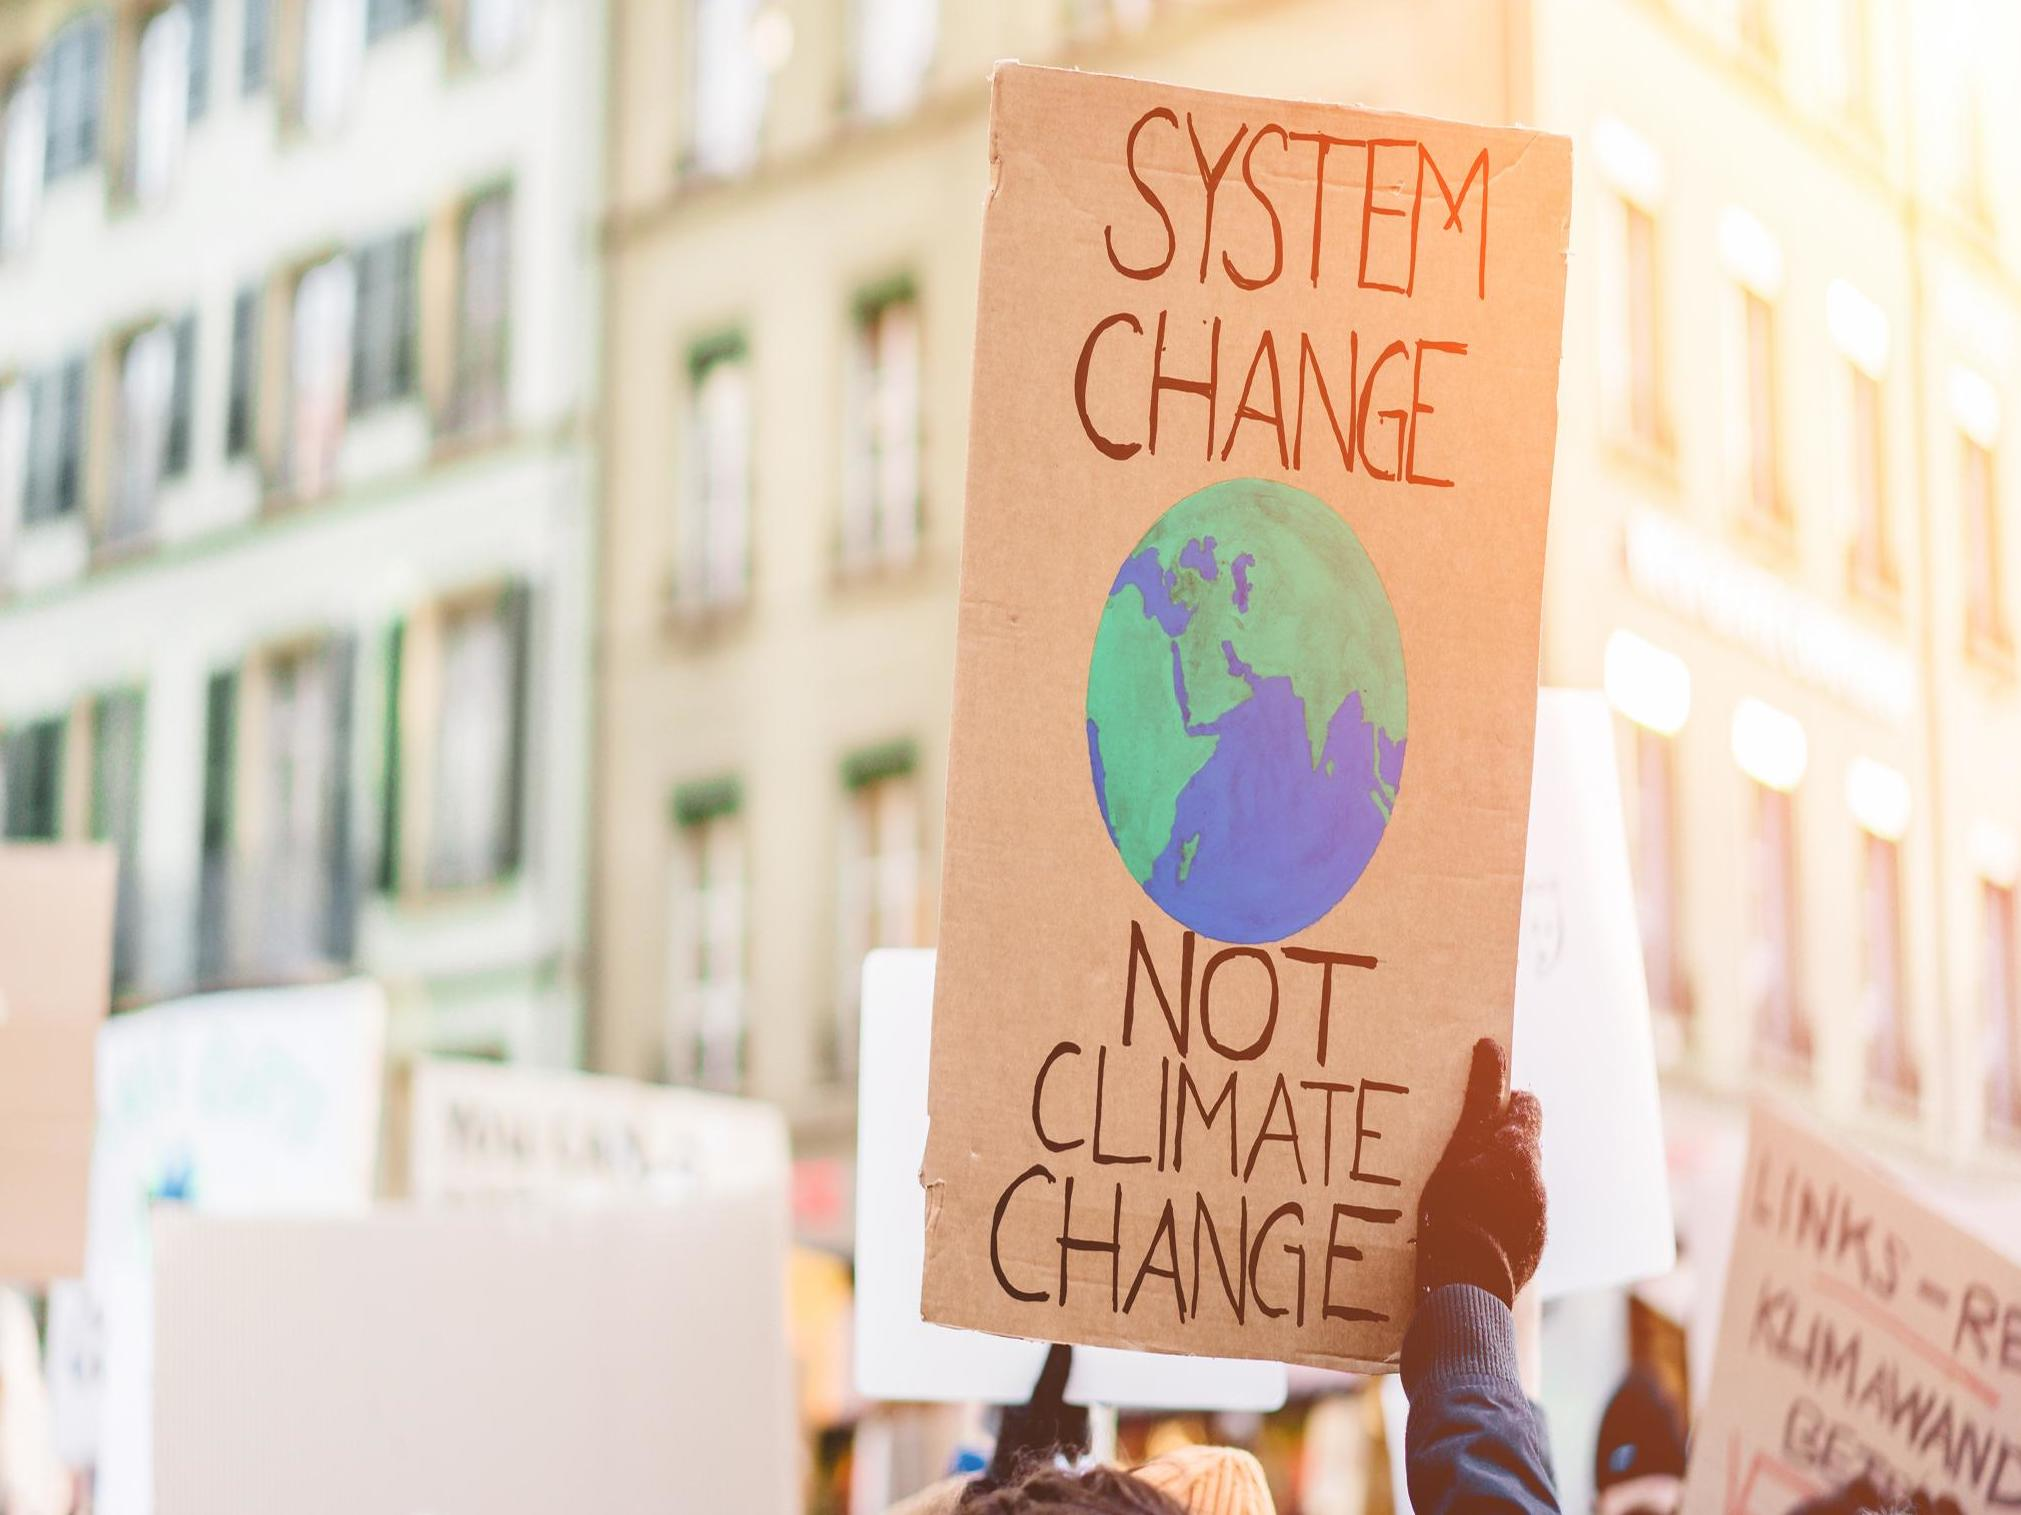 Climate change: Why we need a fundamental shift in how we think about this crisis